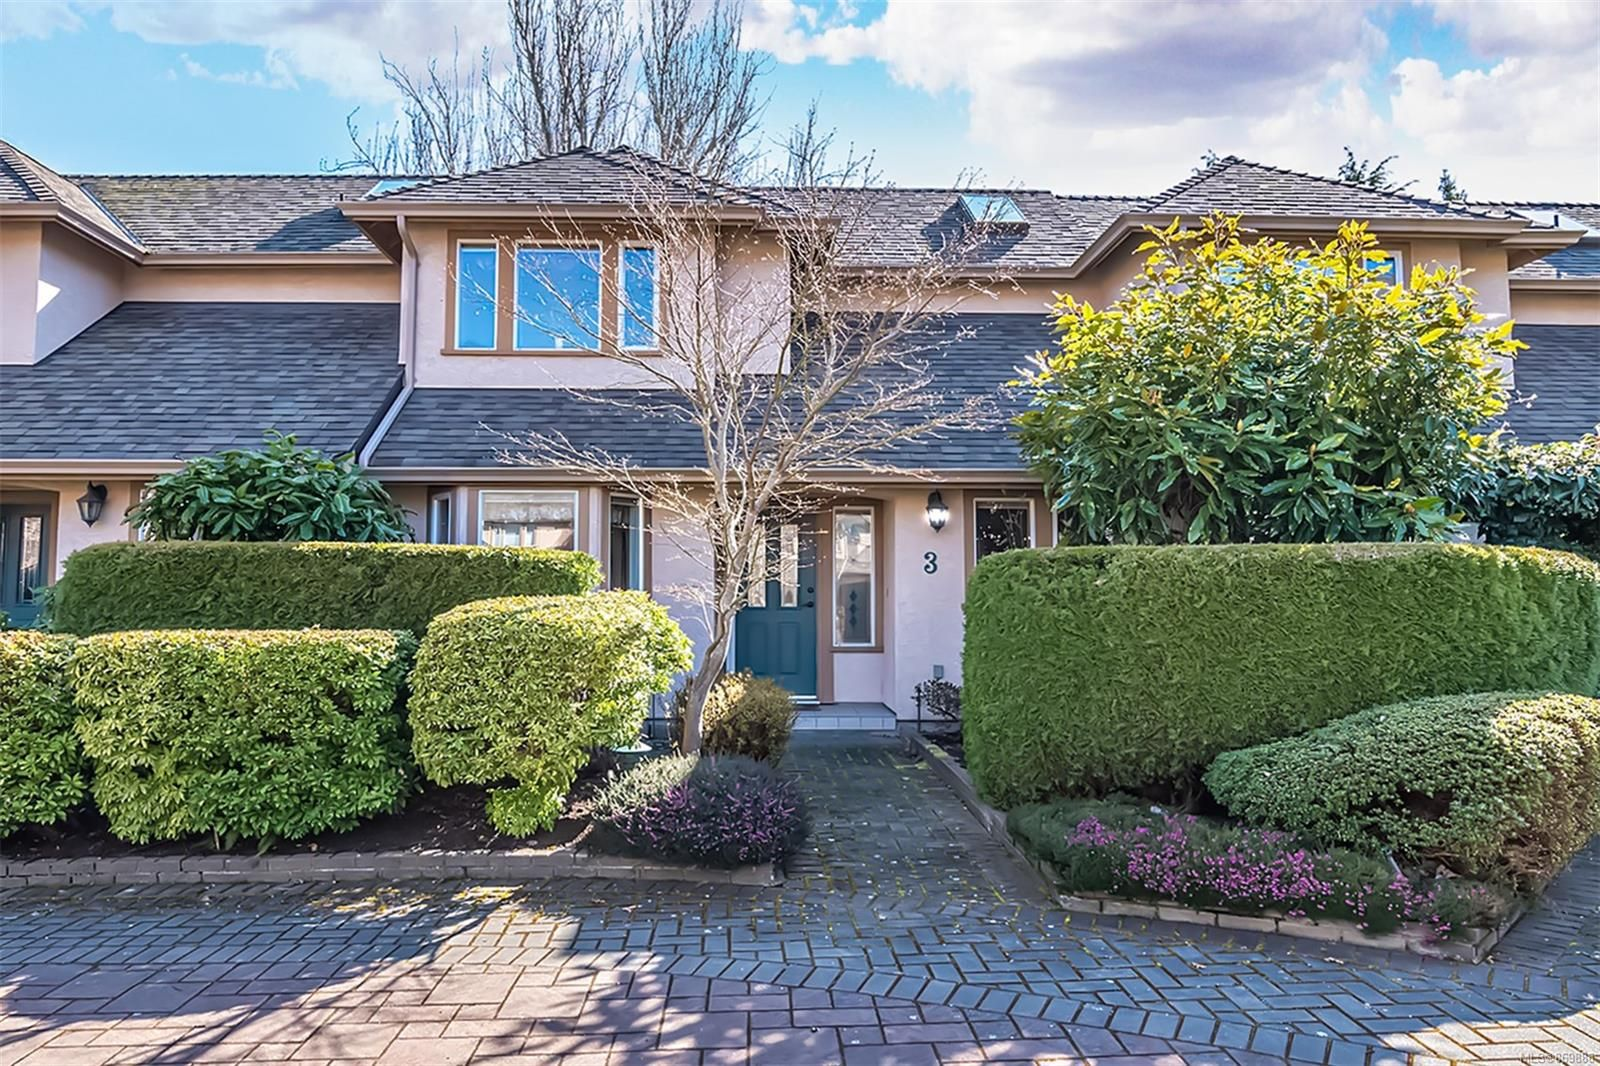 Main Photo: 3 2585 Sinclair Rd in : SE Cadboro Bay Row/Townhouse for sale (Saanich East)  : MLS®# 869888